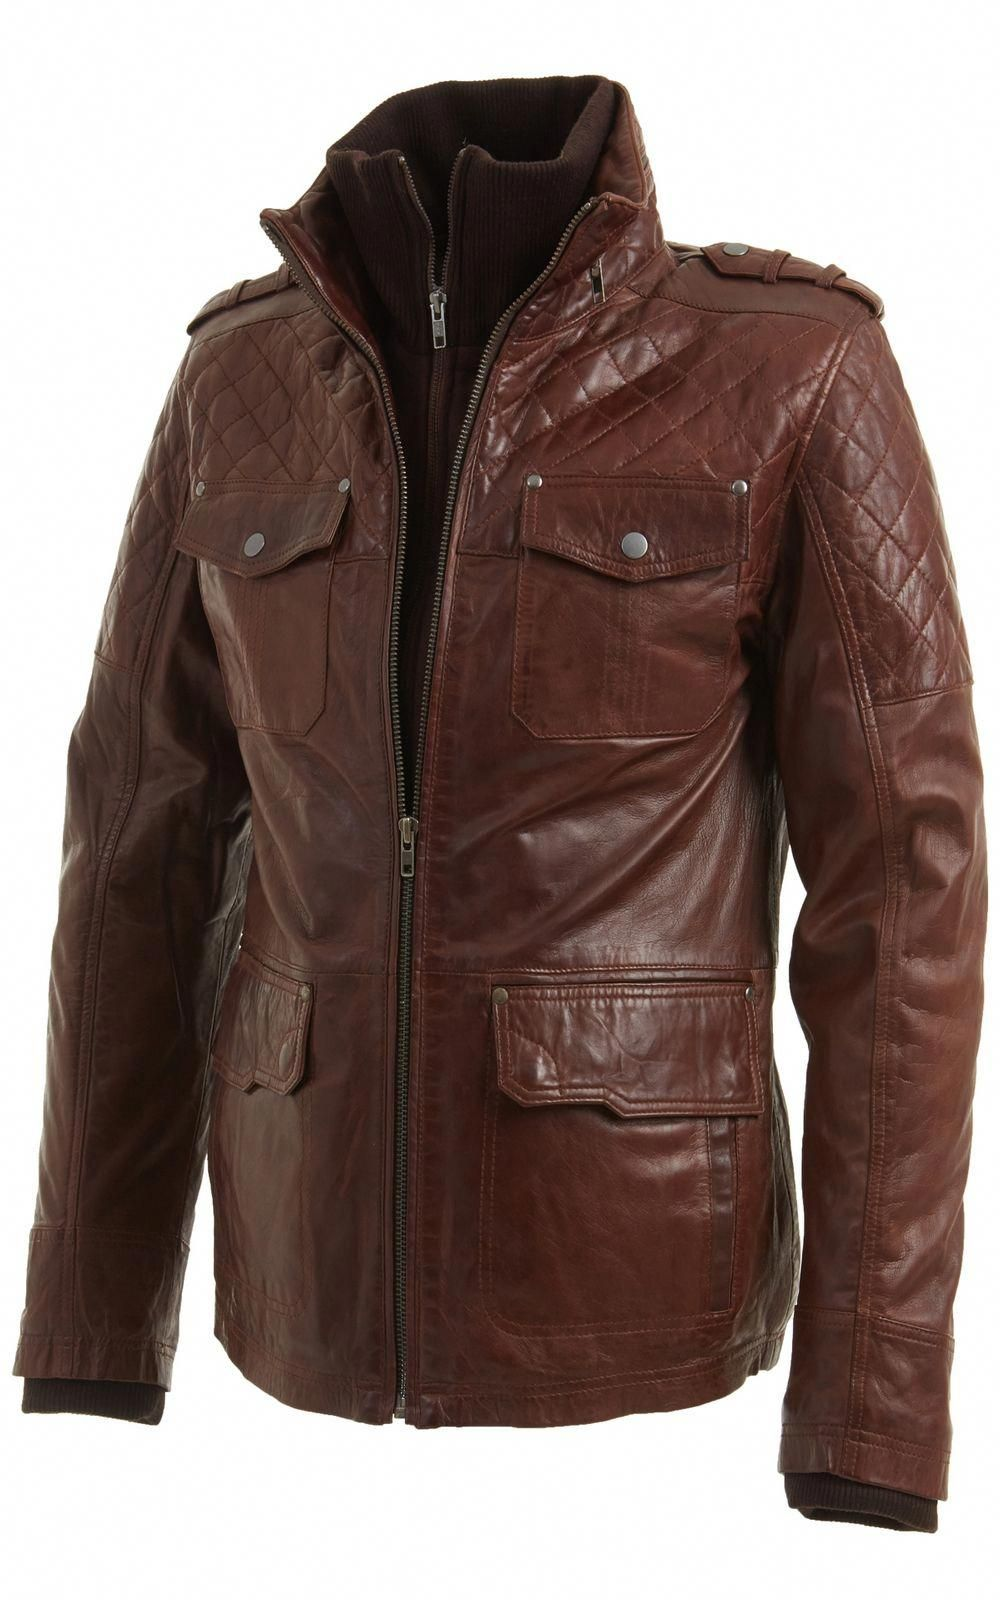 Mens Vintage Brown Leather Biker Jacket In Sizes S To 5xl Also Available In Black Leatherjac Leather Jacket Cool Jackets For Men Mens Leather Jacket Vintage [ 1600 x 1000 Pixel ]